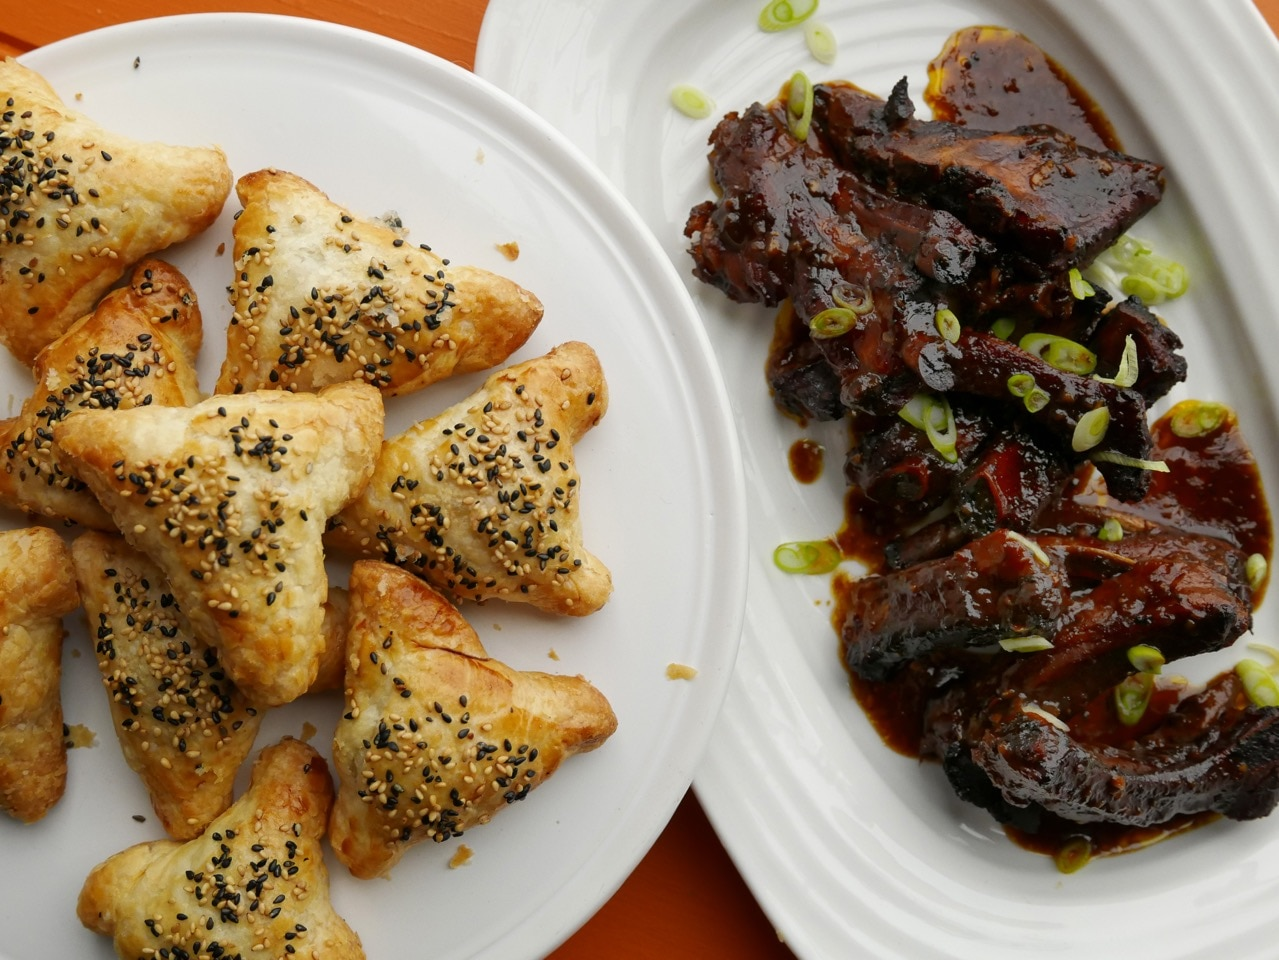 Jeremy Pang's BBQ Hoisin and Cola Ribs with BBQ Pork Puffs